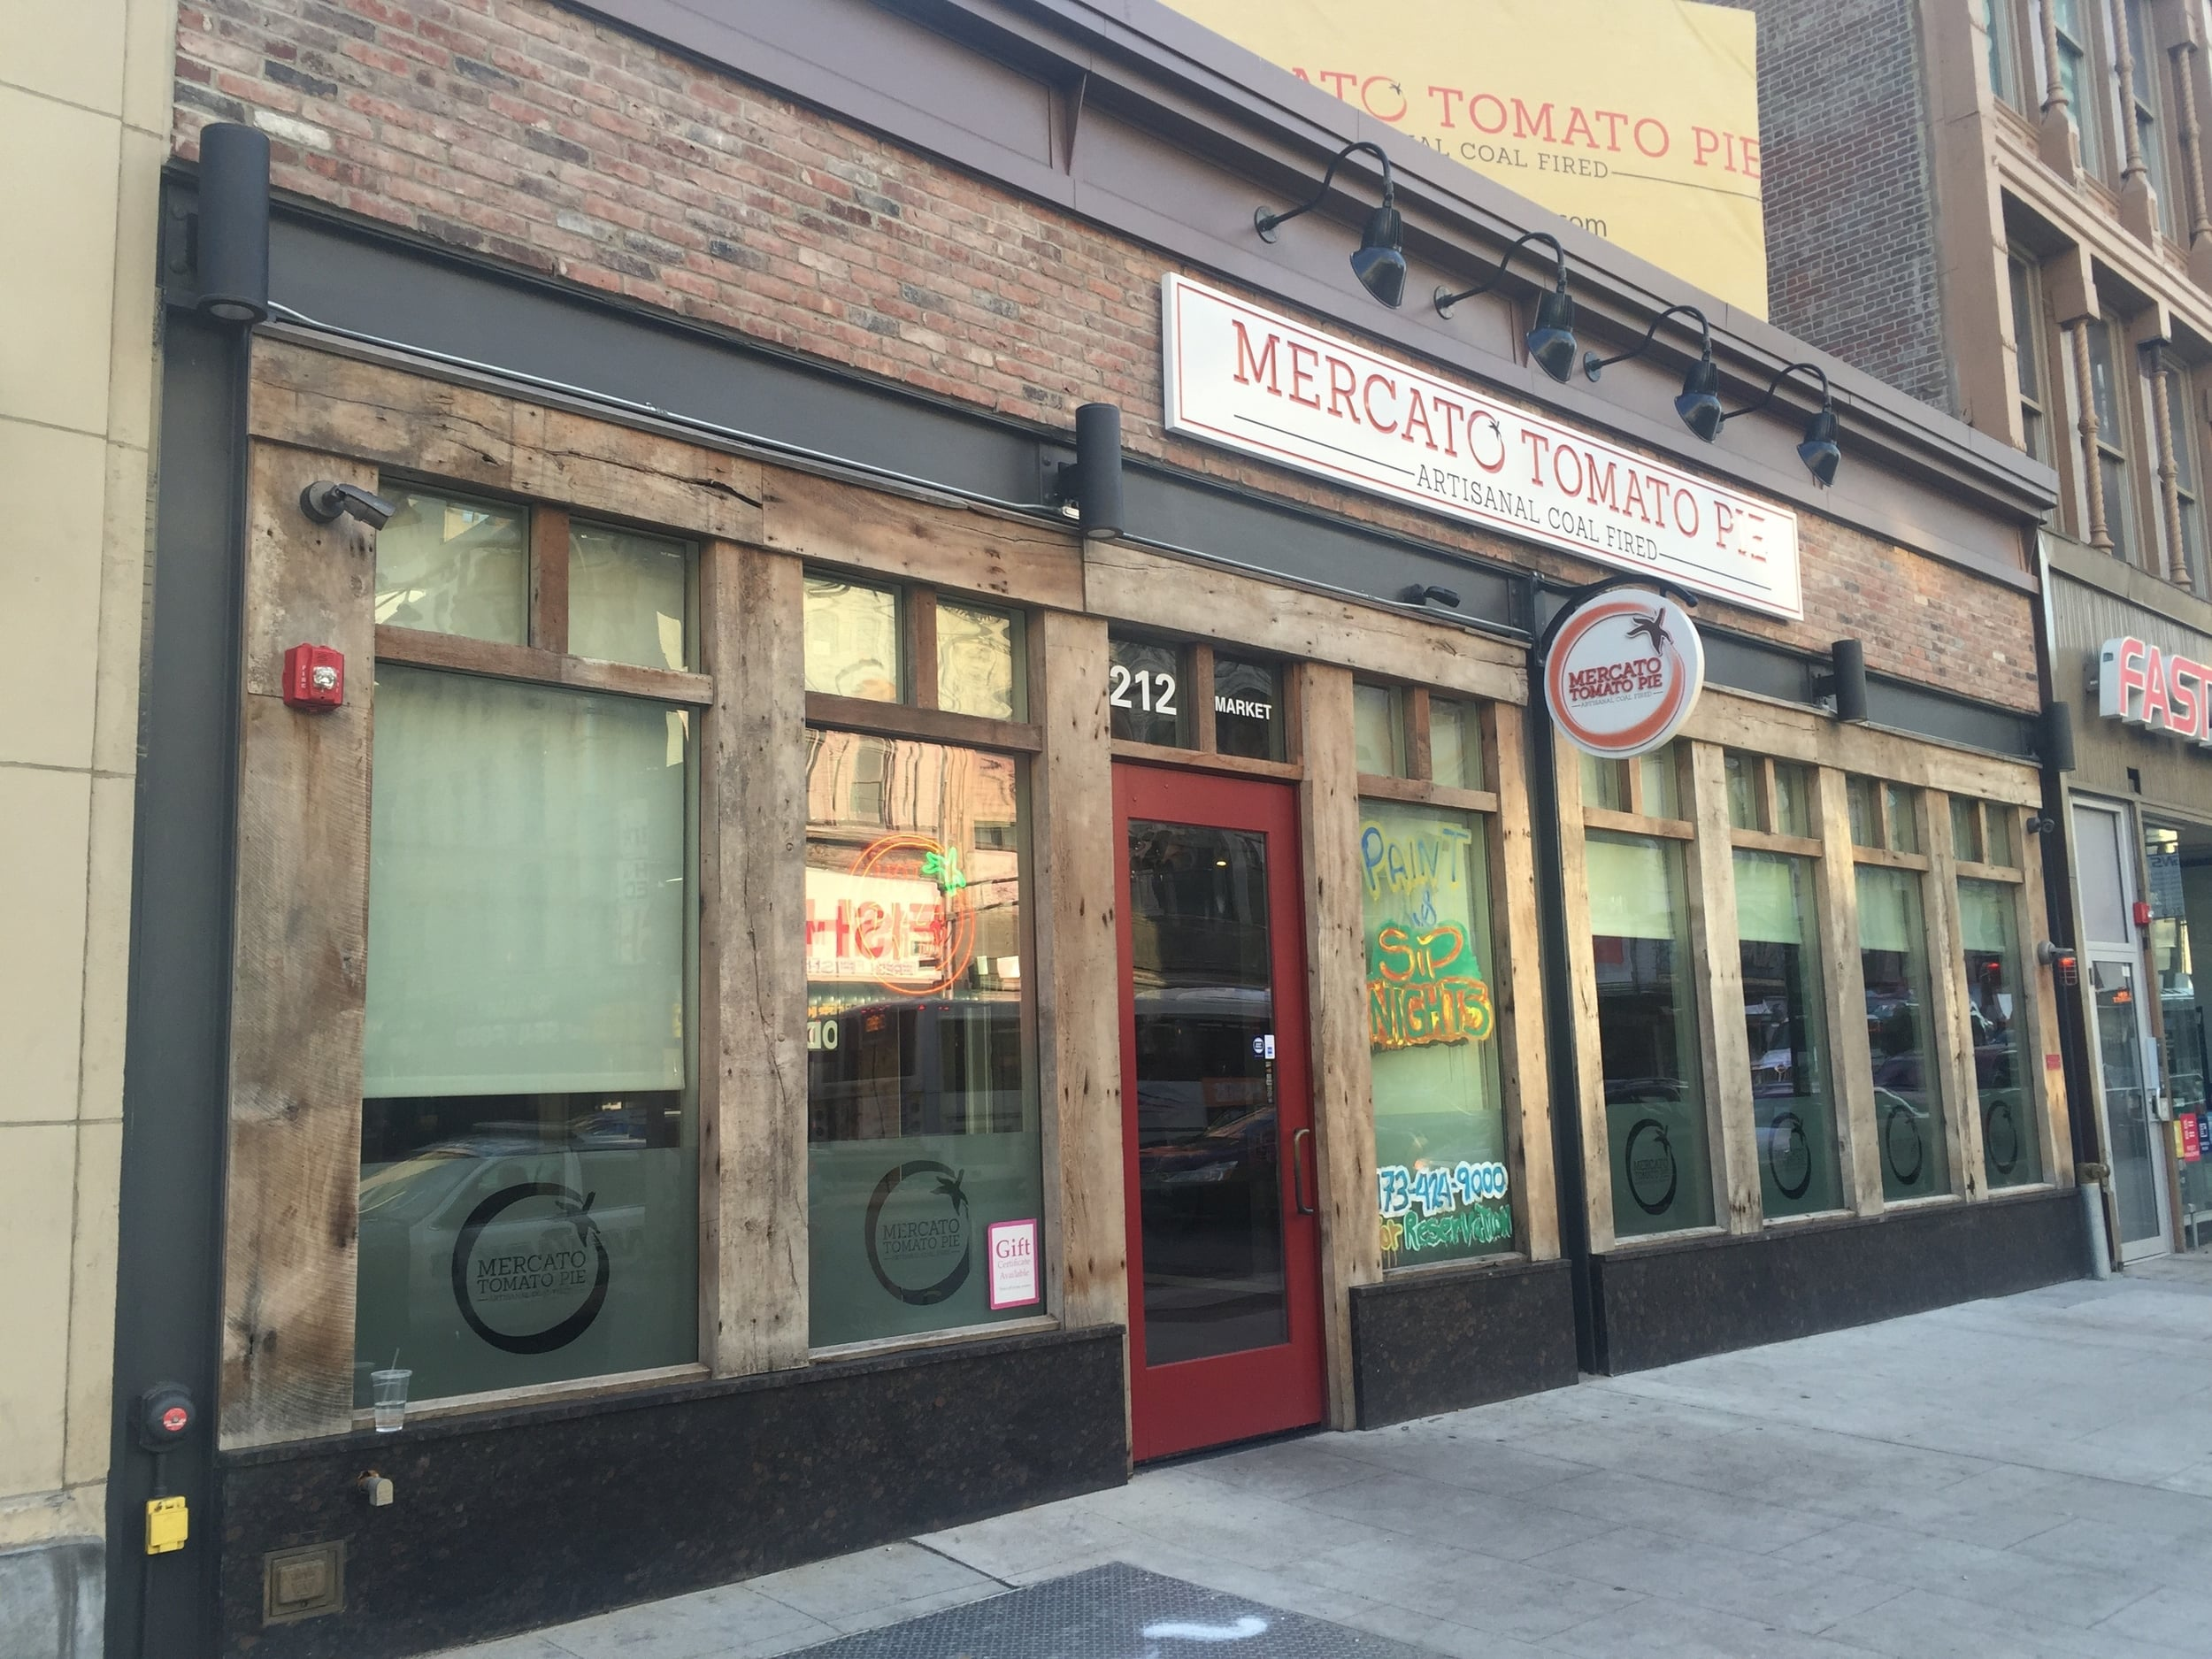 Mercato Tomato Pie, Market Street, Newark  uses all earth tones, a unique rustic wood and brick facade, goose neck lighting, accent lighting, and wall and projecting signs that match the facade. The business also used paint to advertise on the windows, further adding to its unique and artsy vibe.